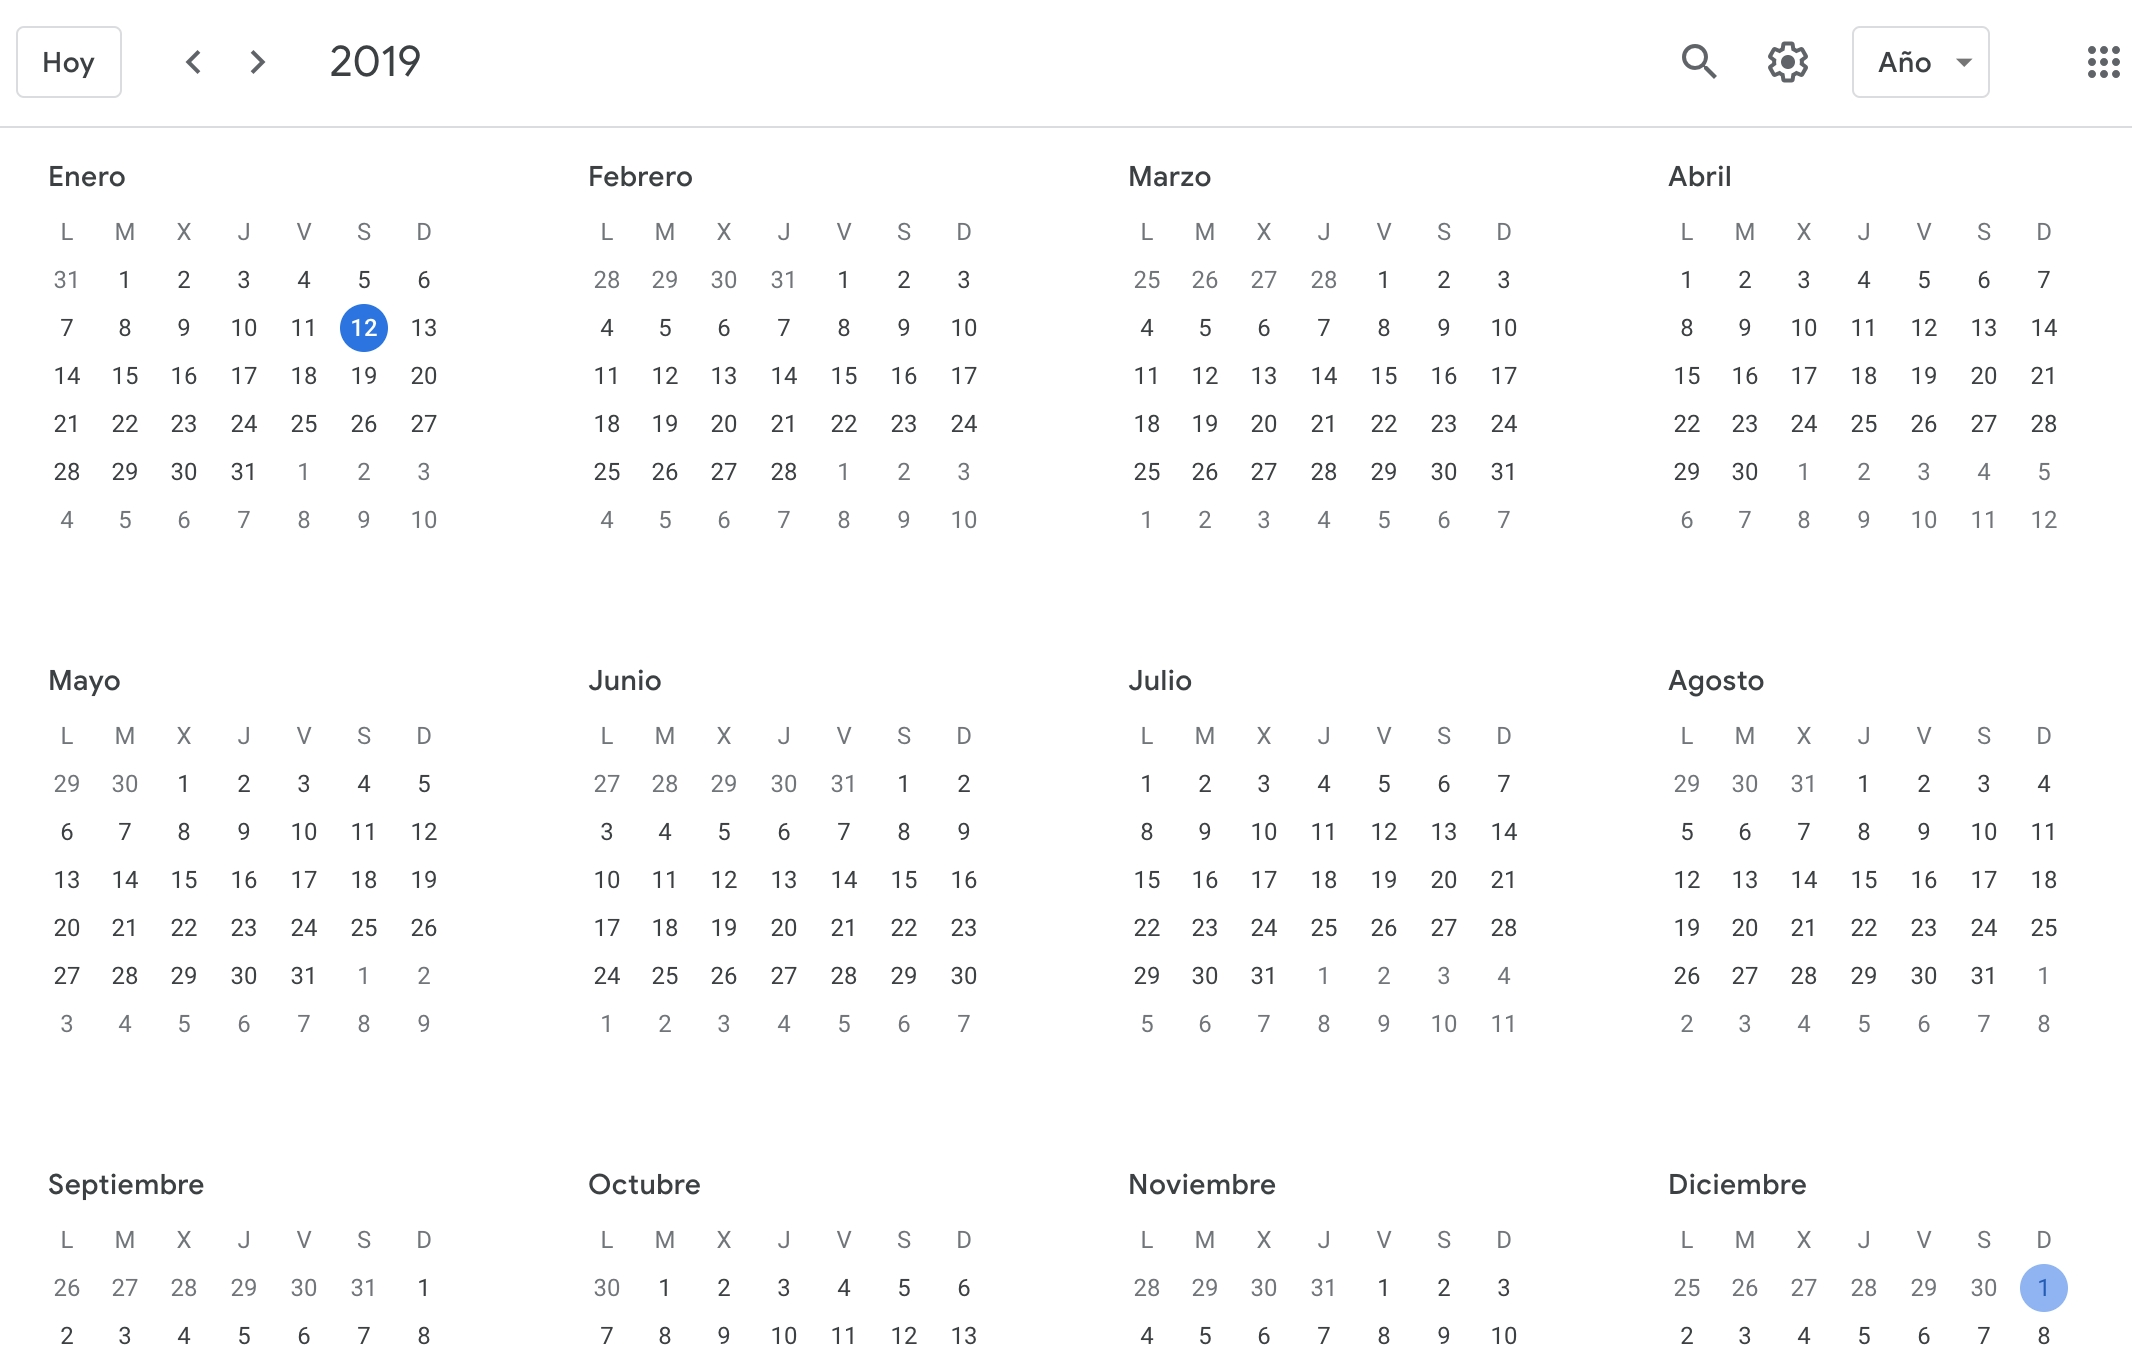 Howto See Google Calendar Events In Yearly View